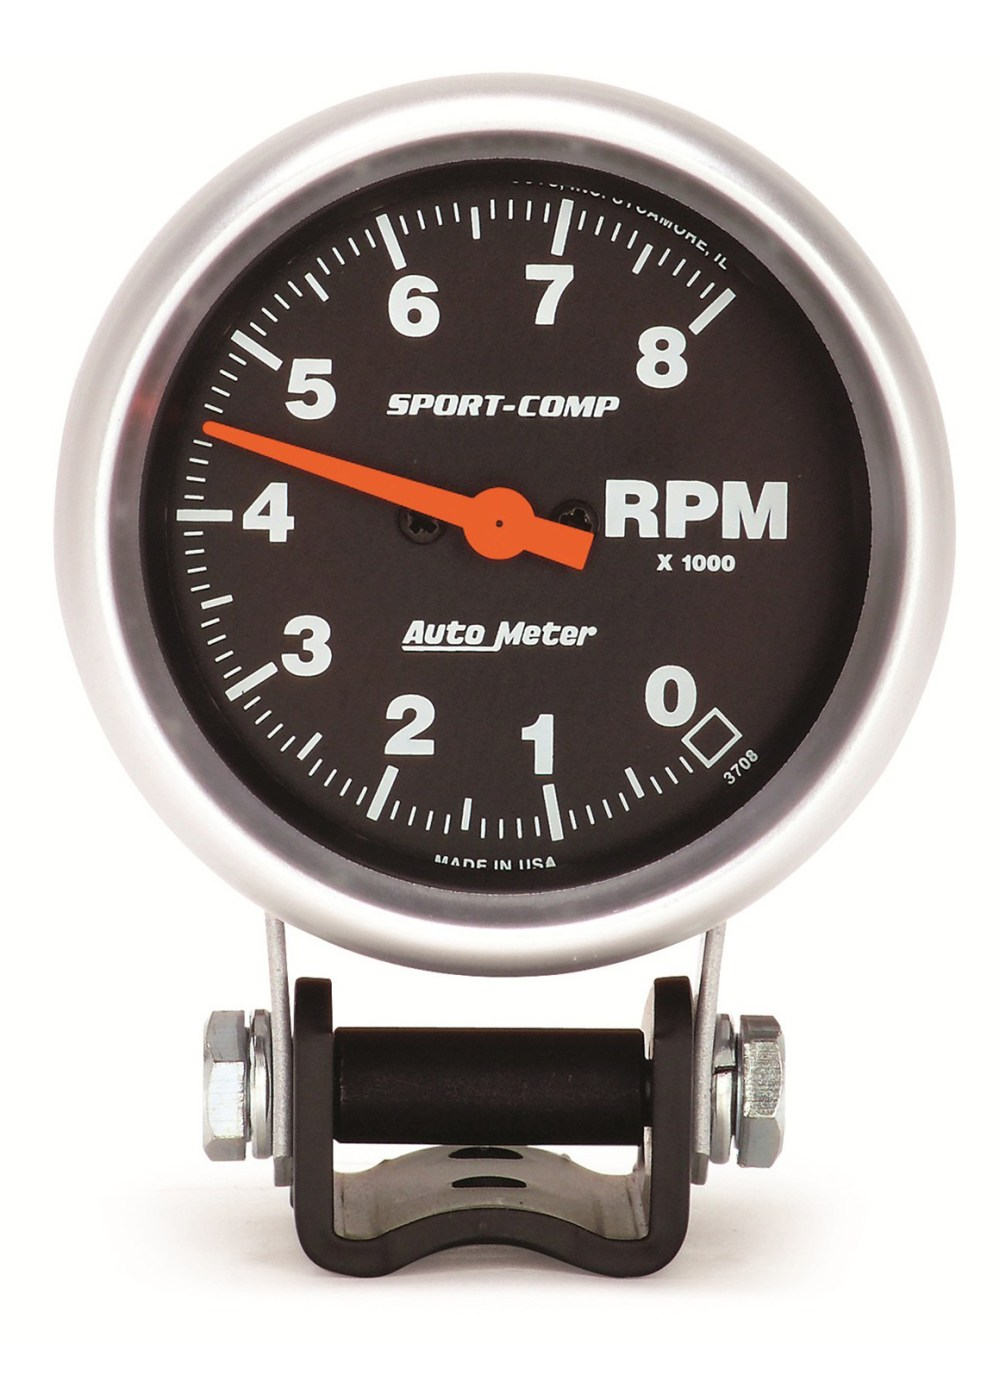 medium resolution of auto meter sport comp tachs feature u s made air core electronic movements that resist vibration and provide extremely accurate motion